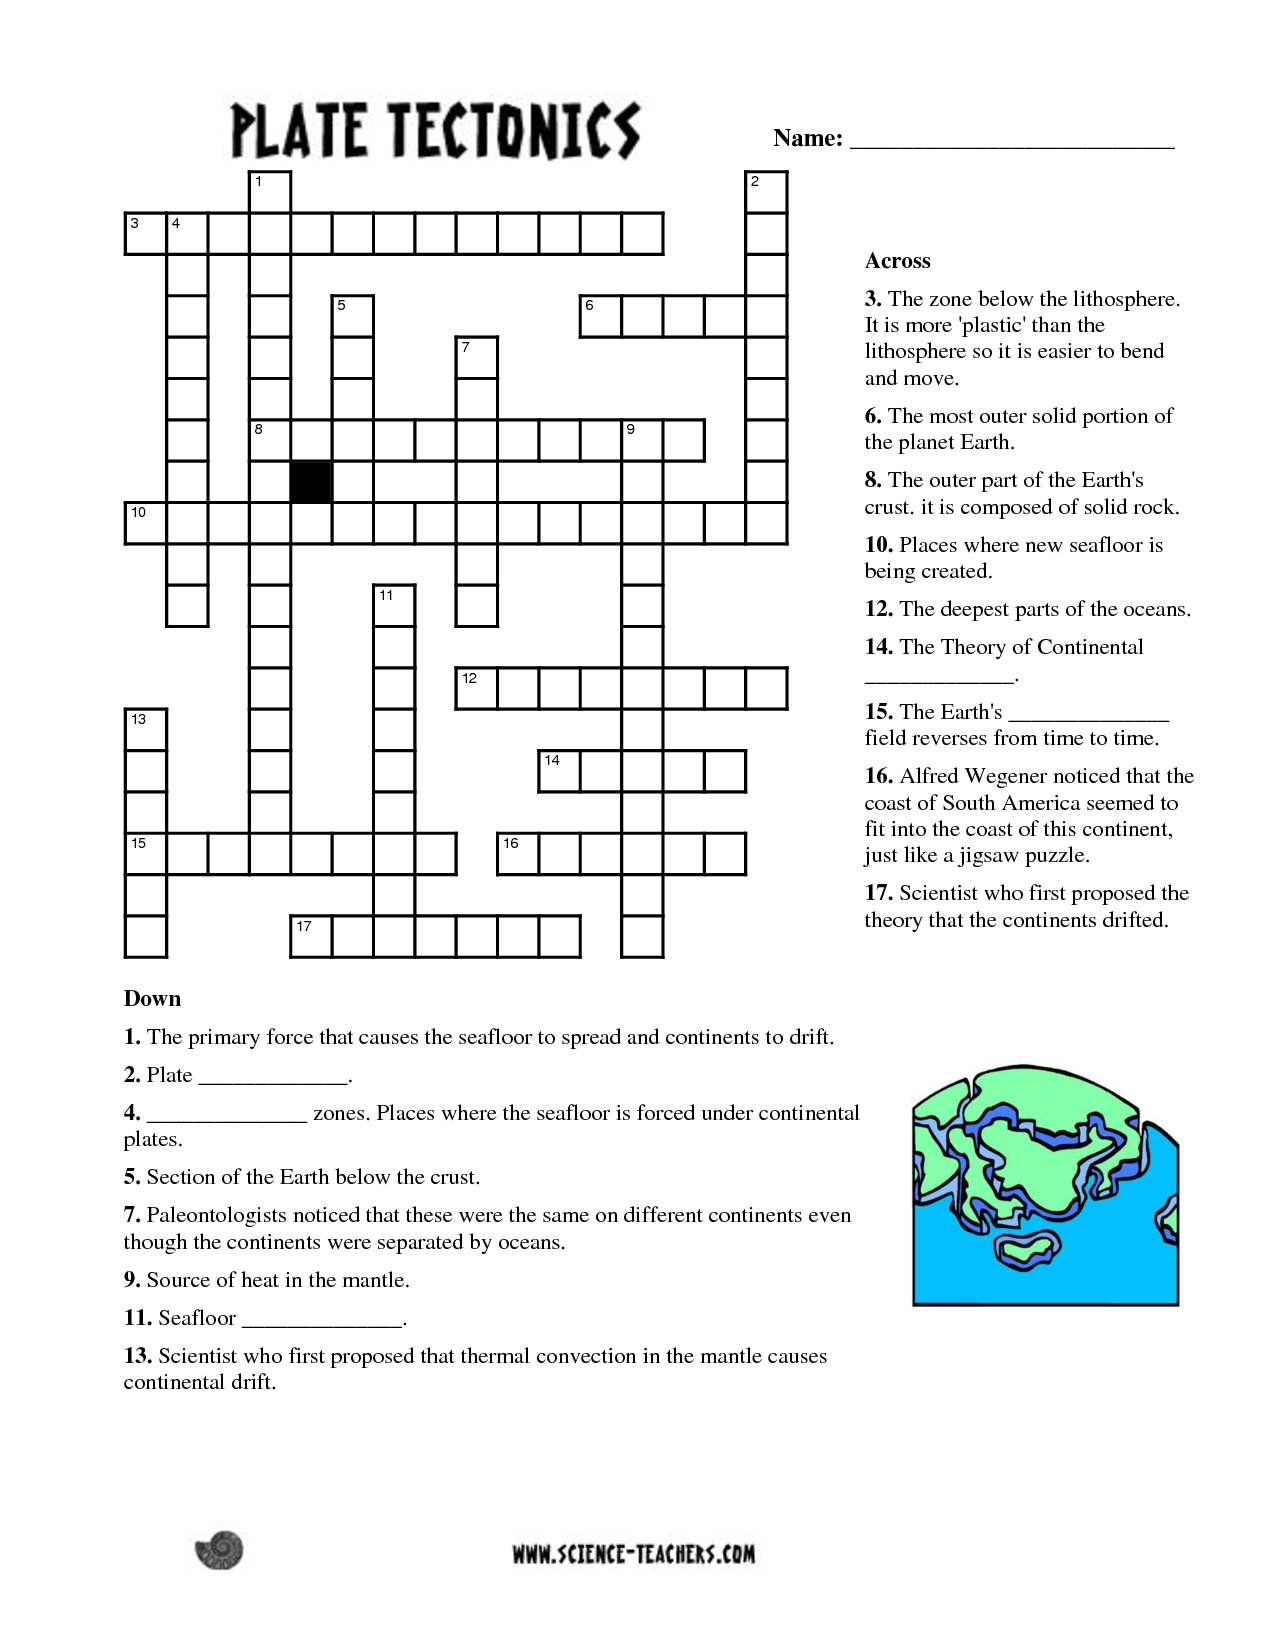 hight resolution of Planets Crossword Puzzle Worksheet   Printable crossword puzzles